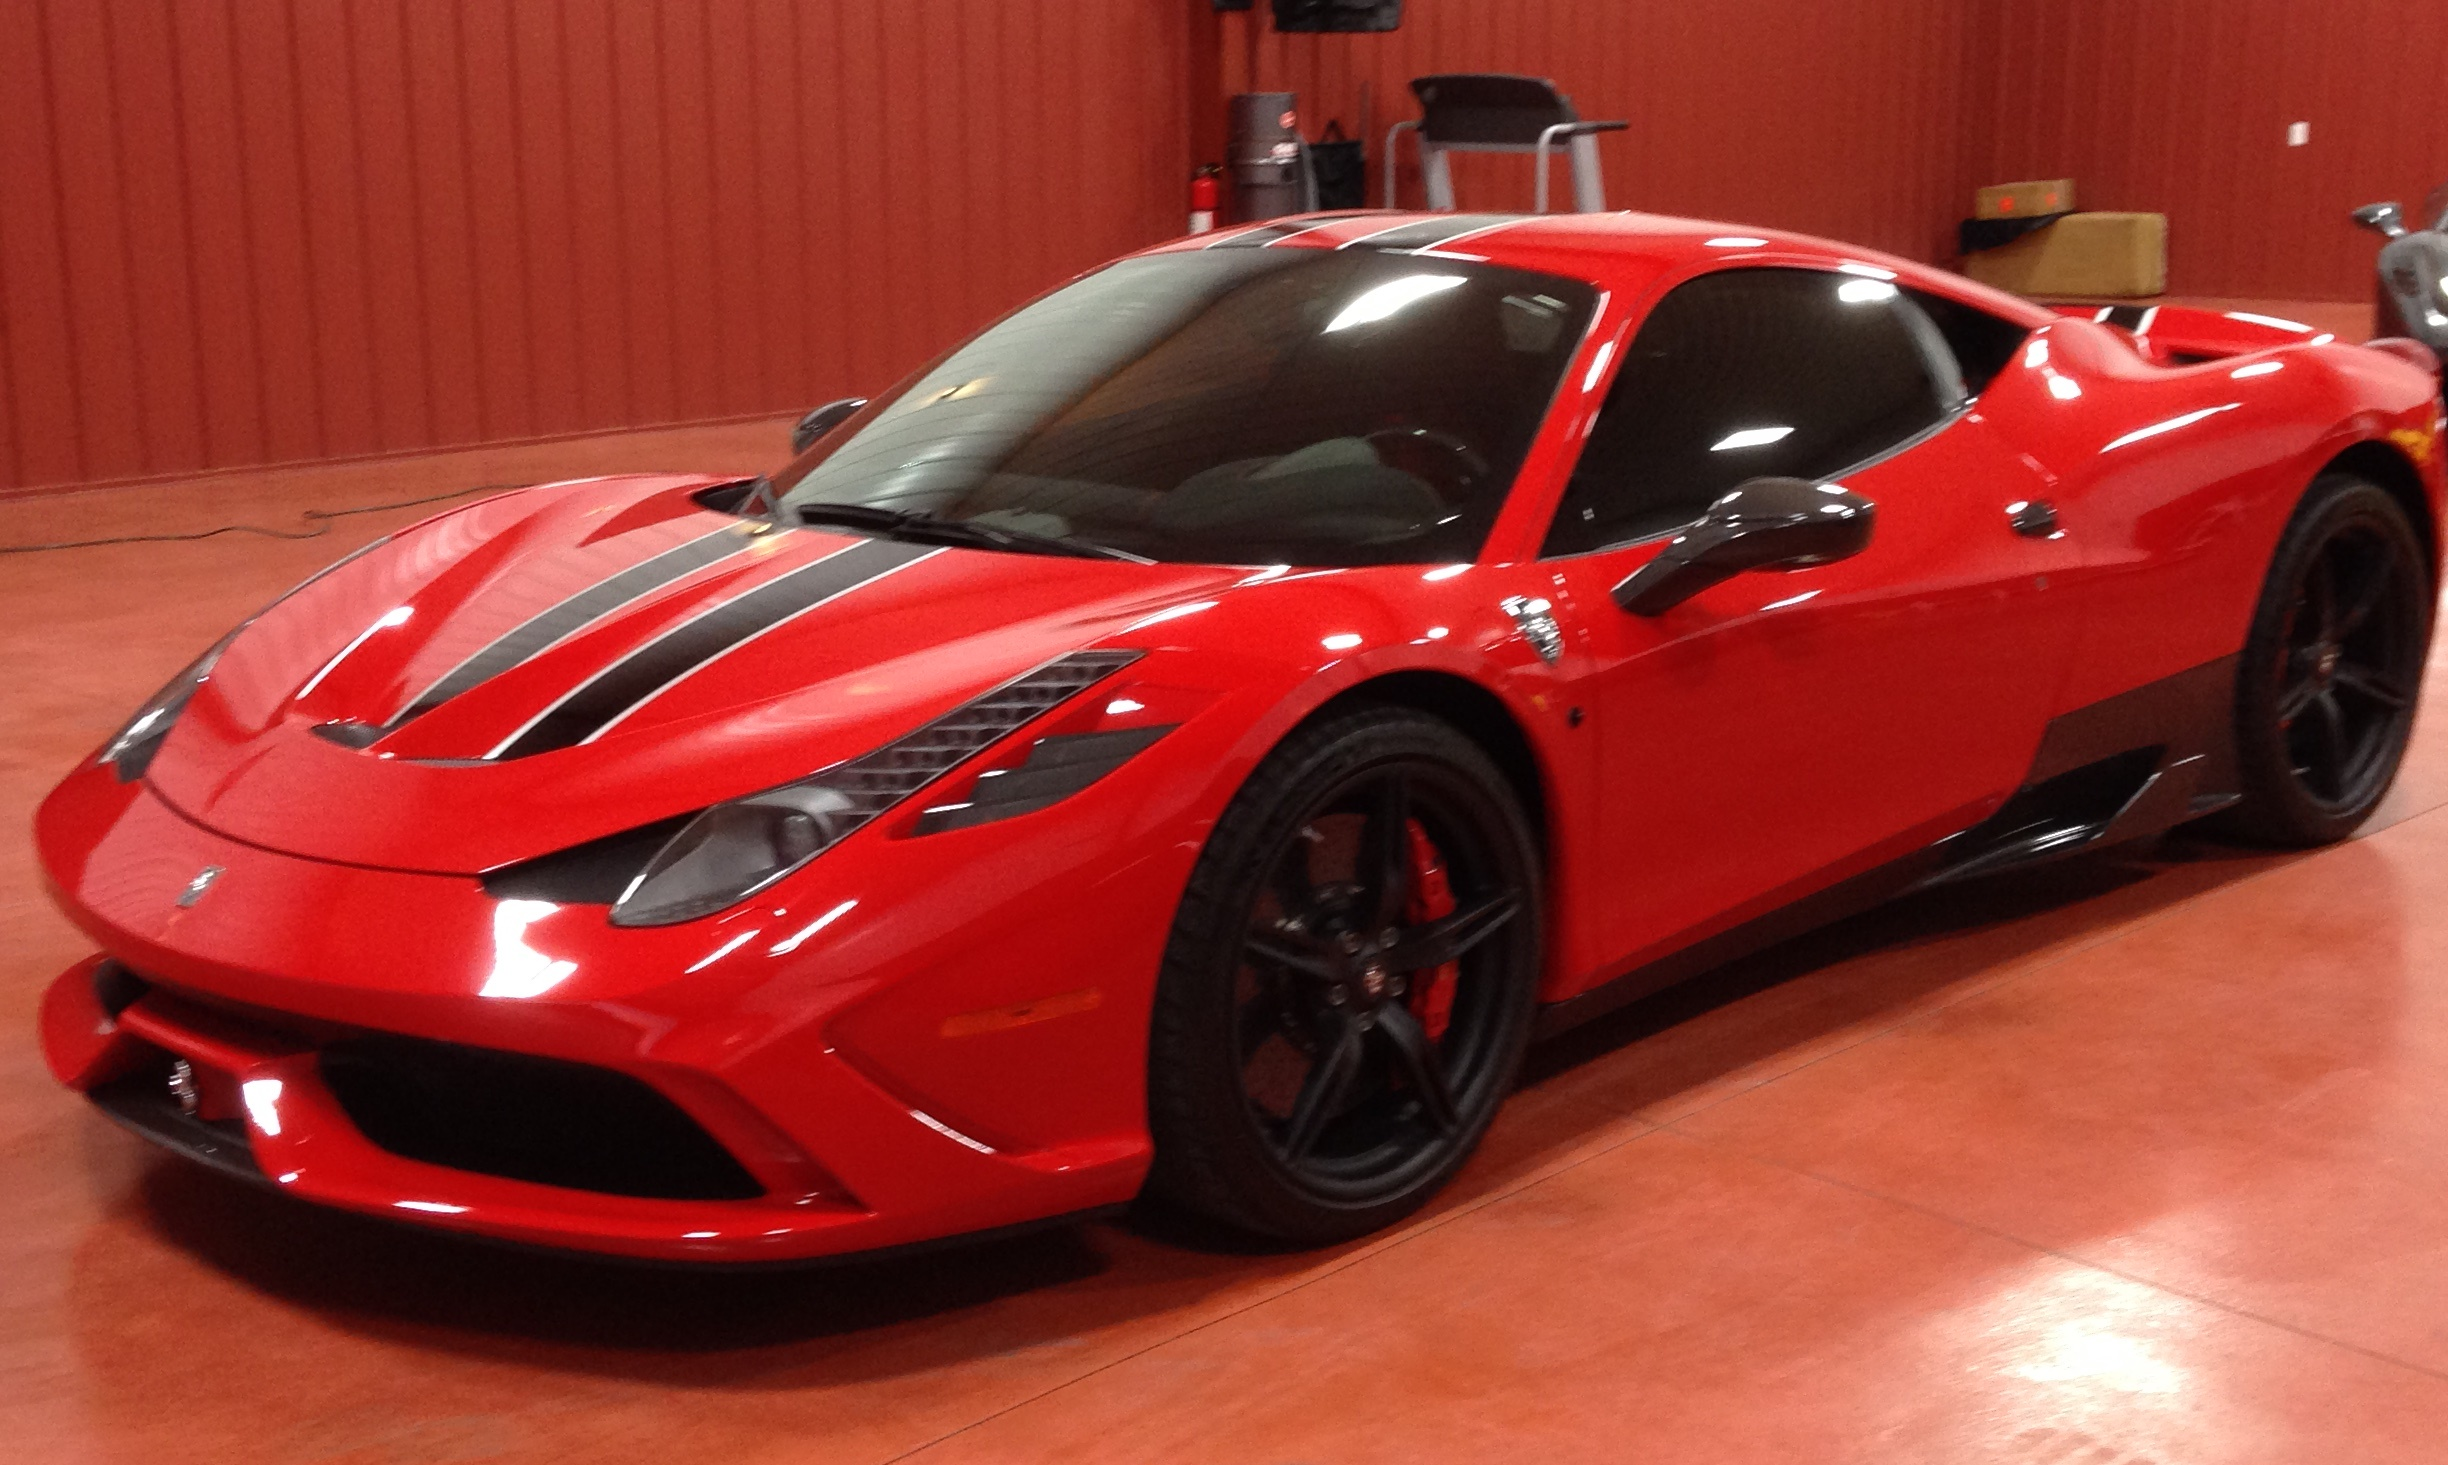 2015 Ferrari 458 Speciale >> 2015 Ferrari 458 Speciale Sold Exotic Car Search